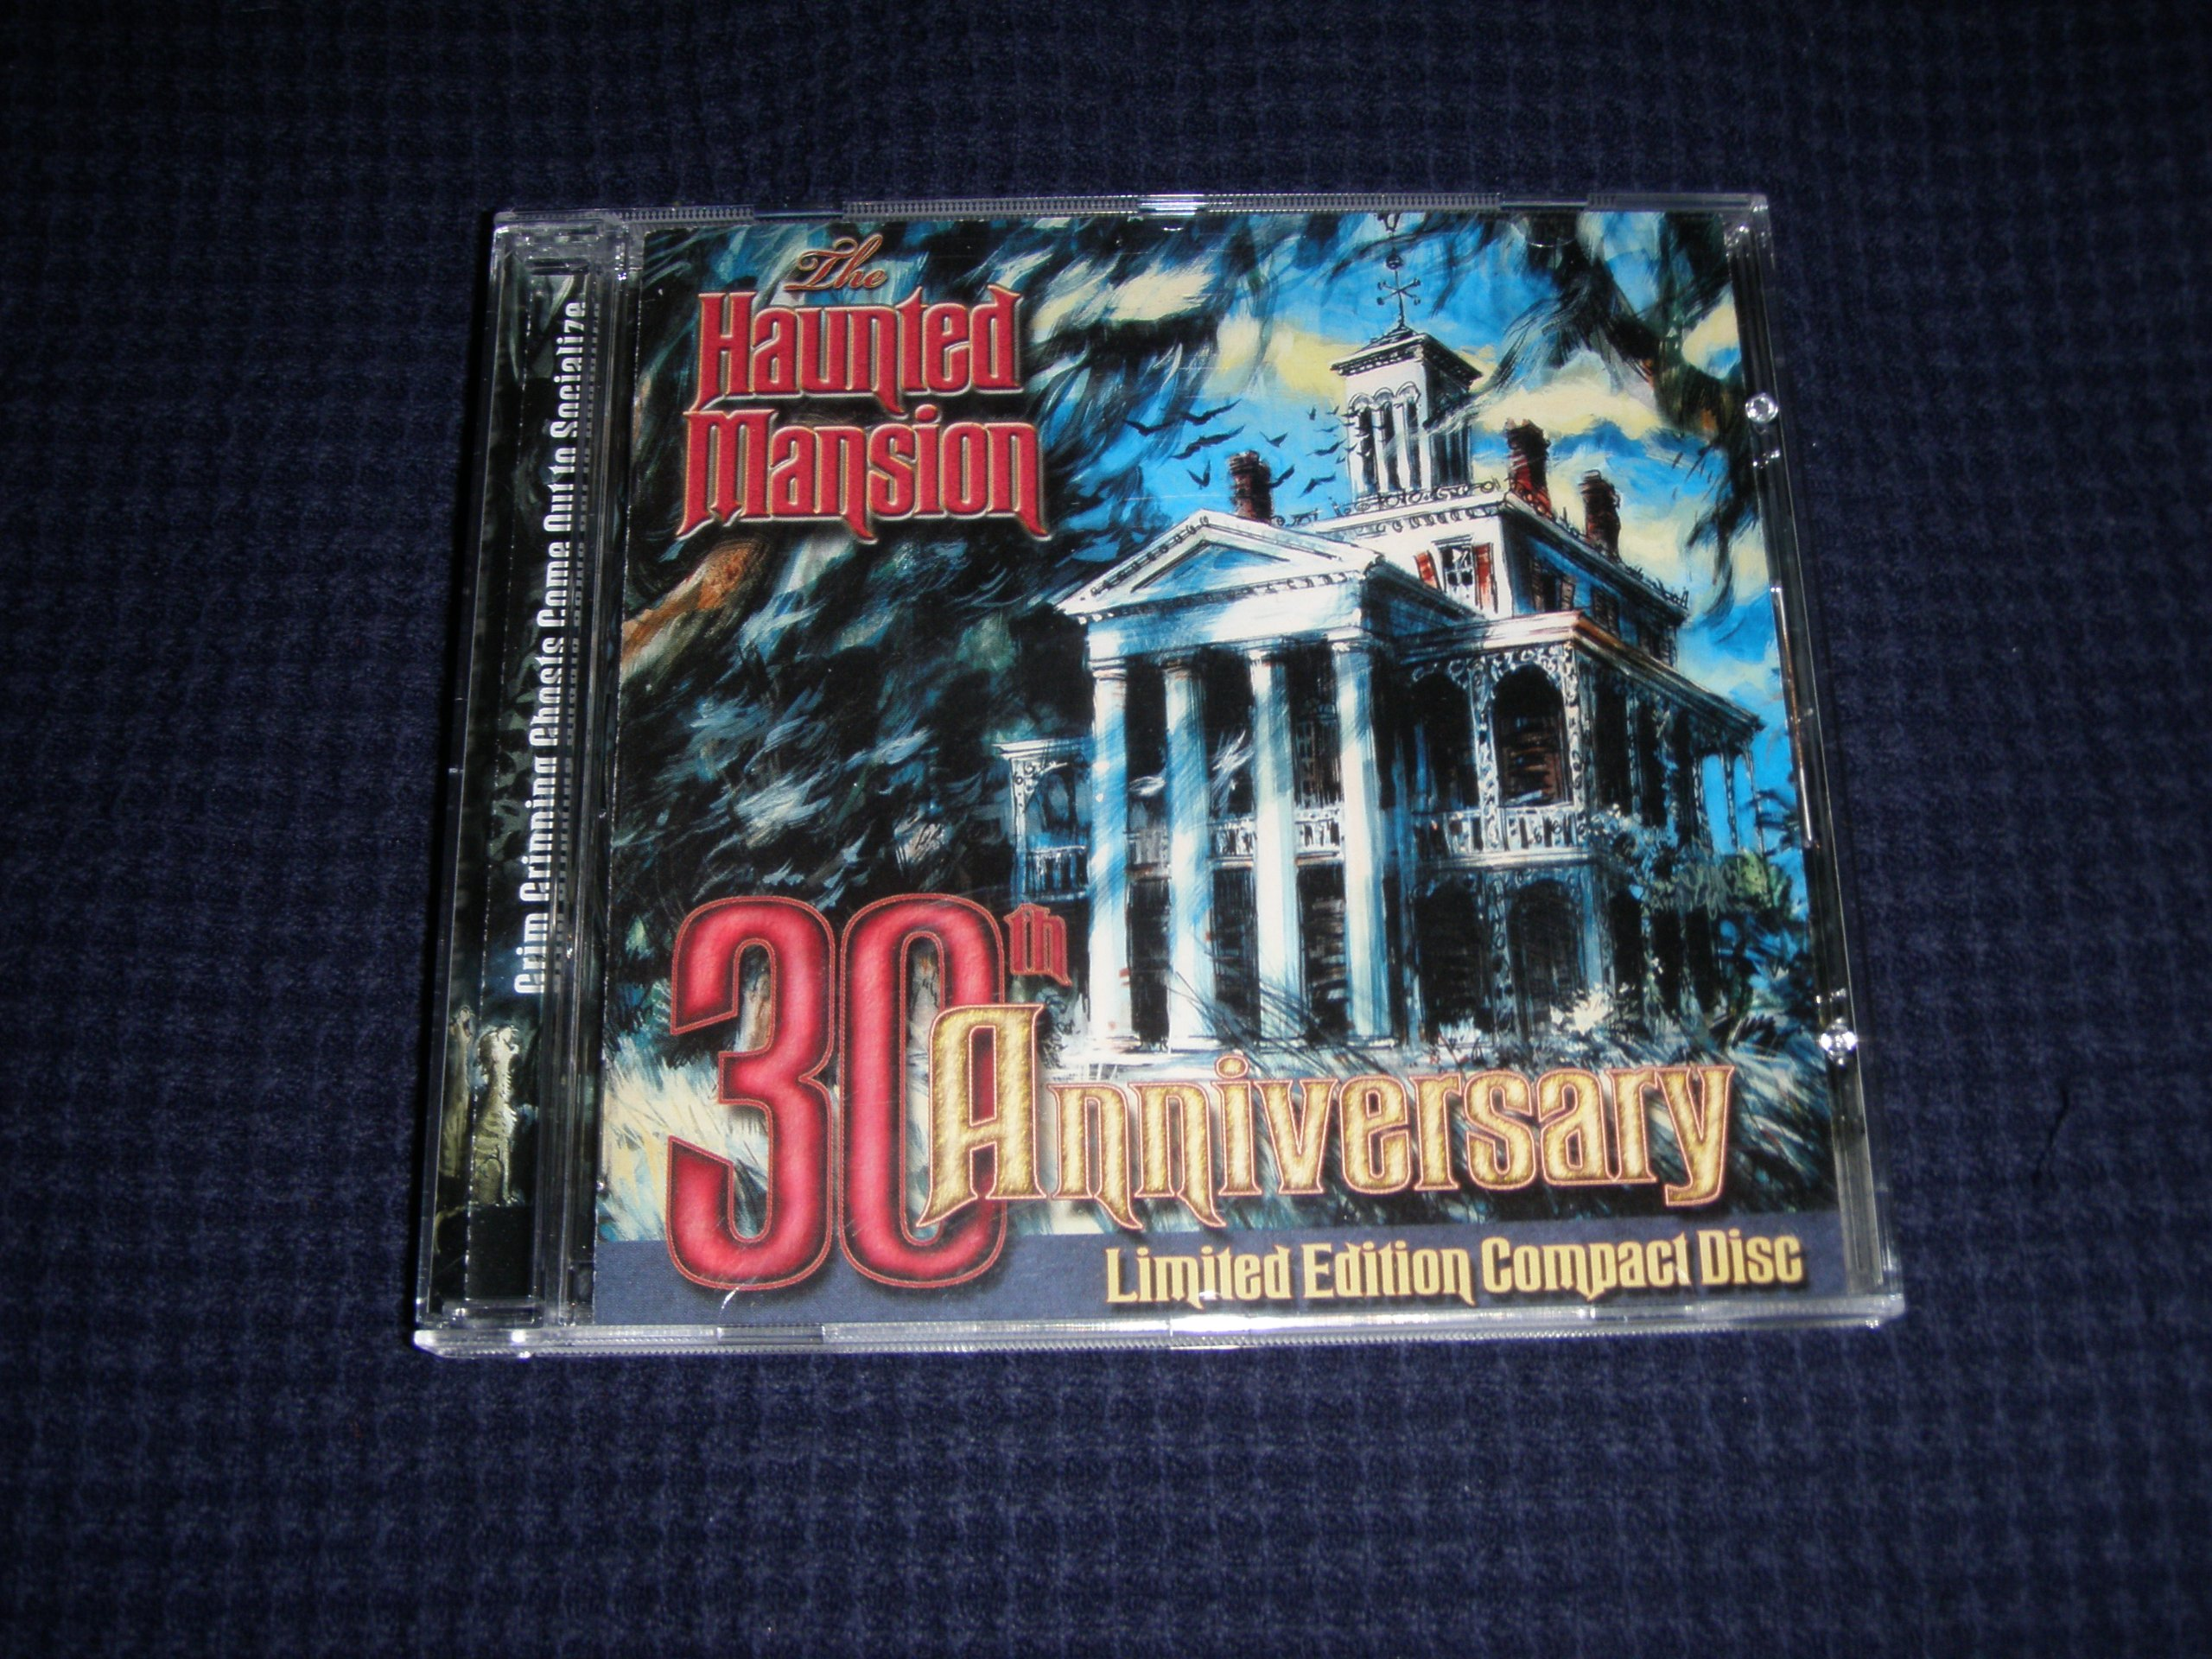 Haunted Mansion 30th Anniversary Limited Edition Compact Disc by